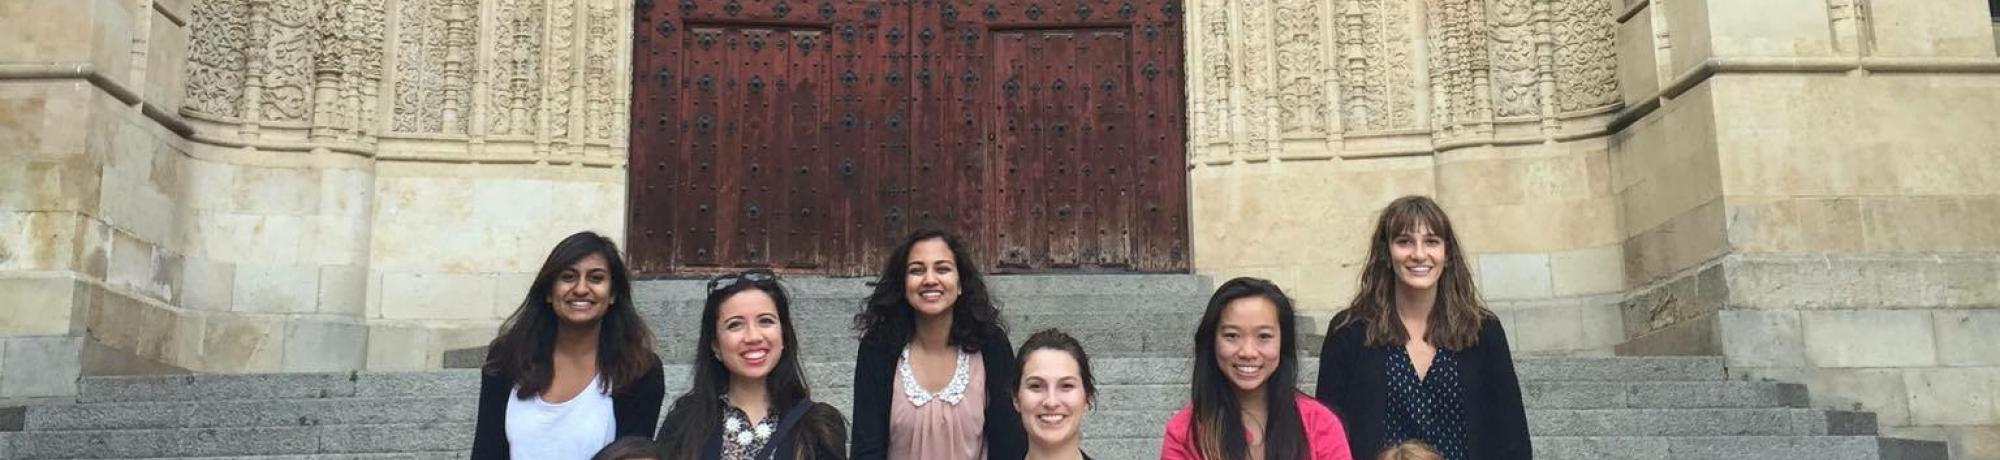 Students taking part  in medieval Spain study abroad course.